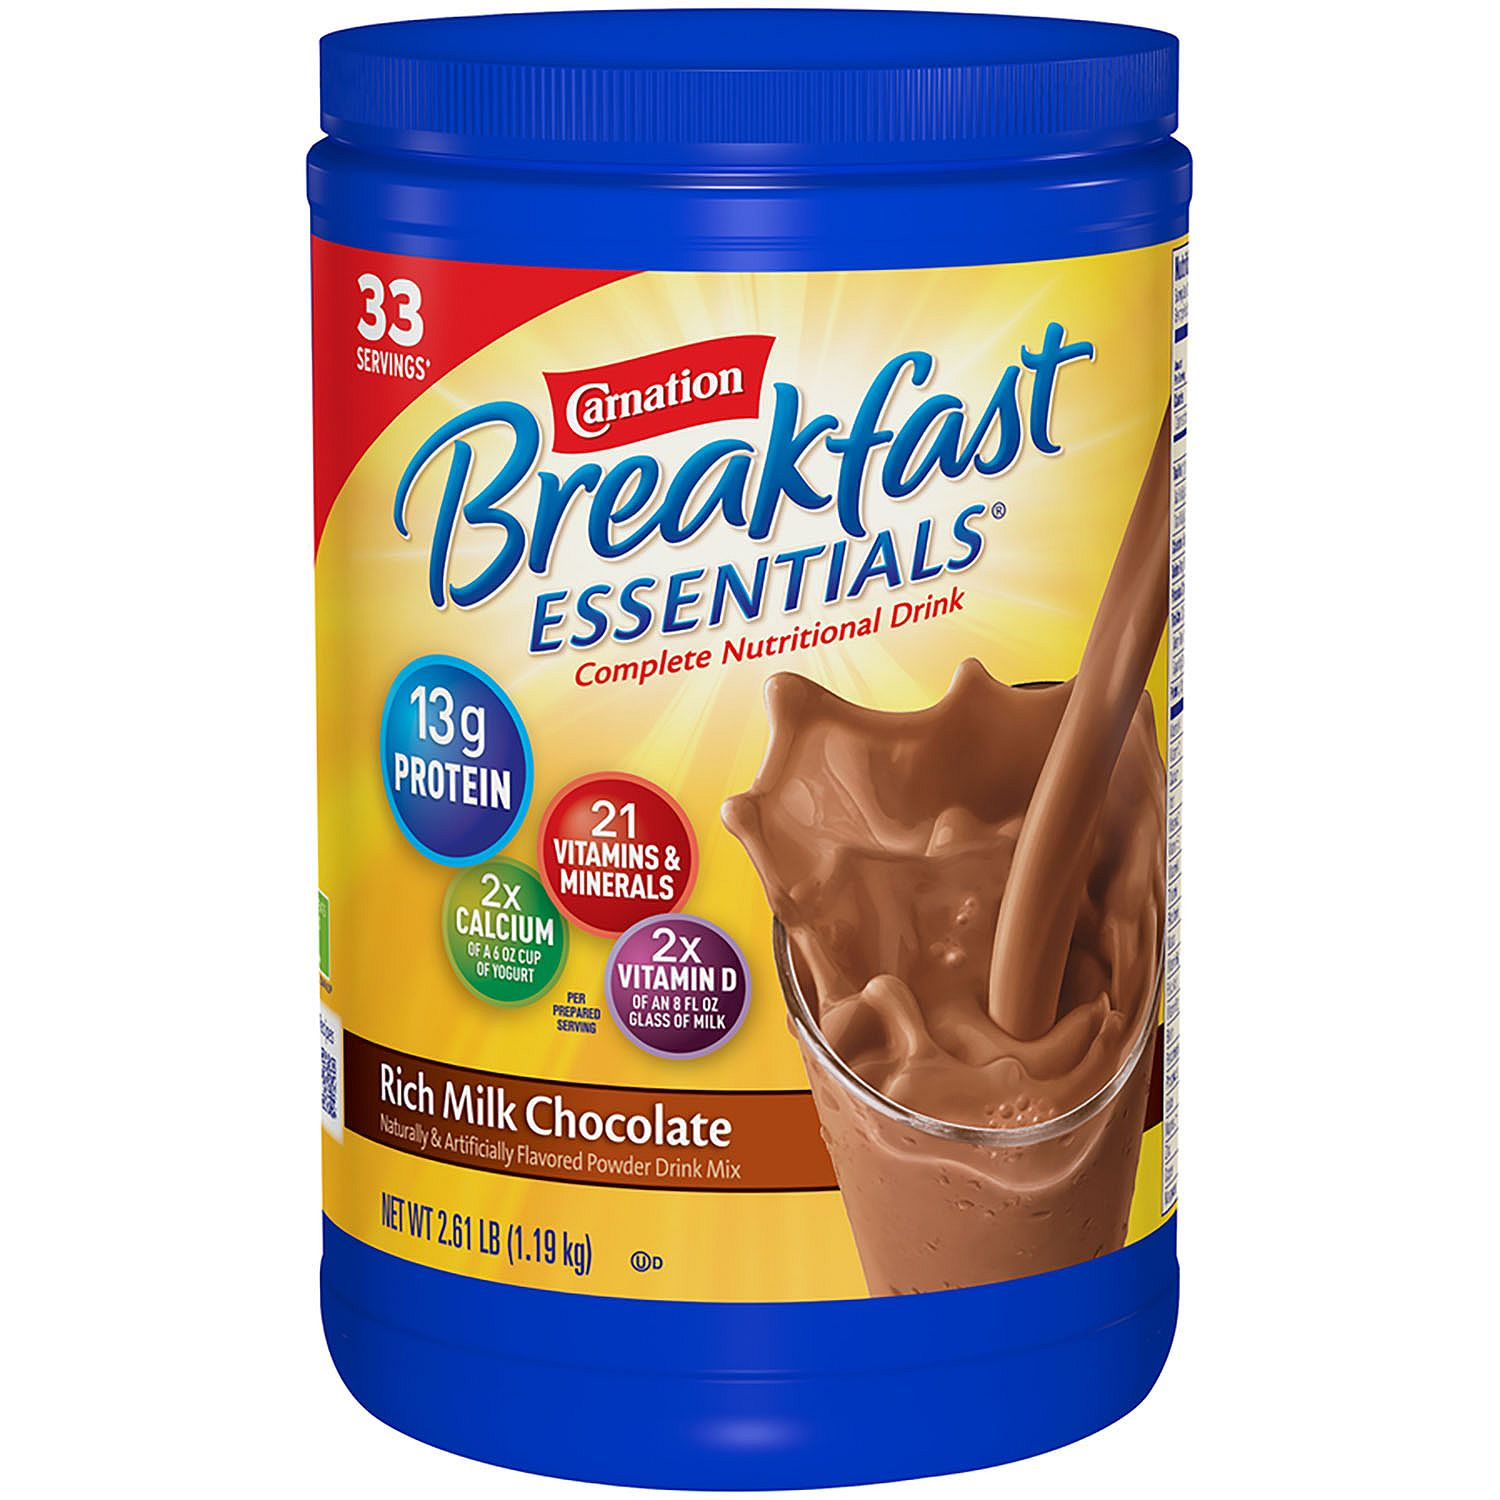 Carnation Breakfast Essentials Rich Milk Chocolate Complete Nutritional Drink 41.76 oz. Canister - 33 Servings